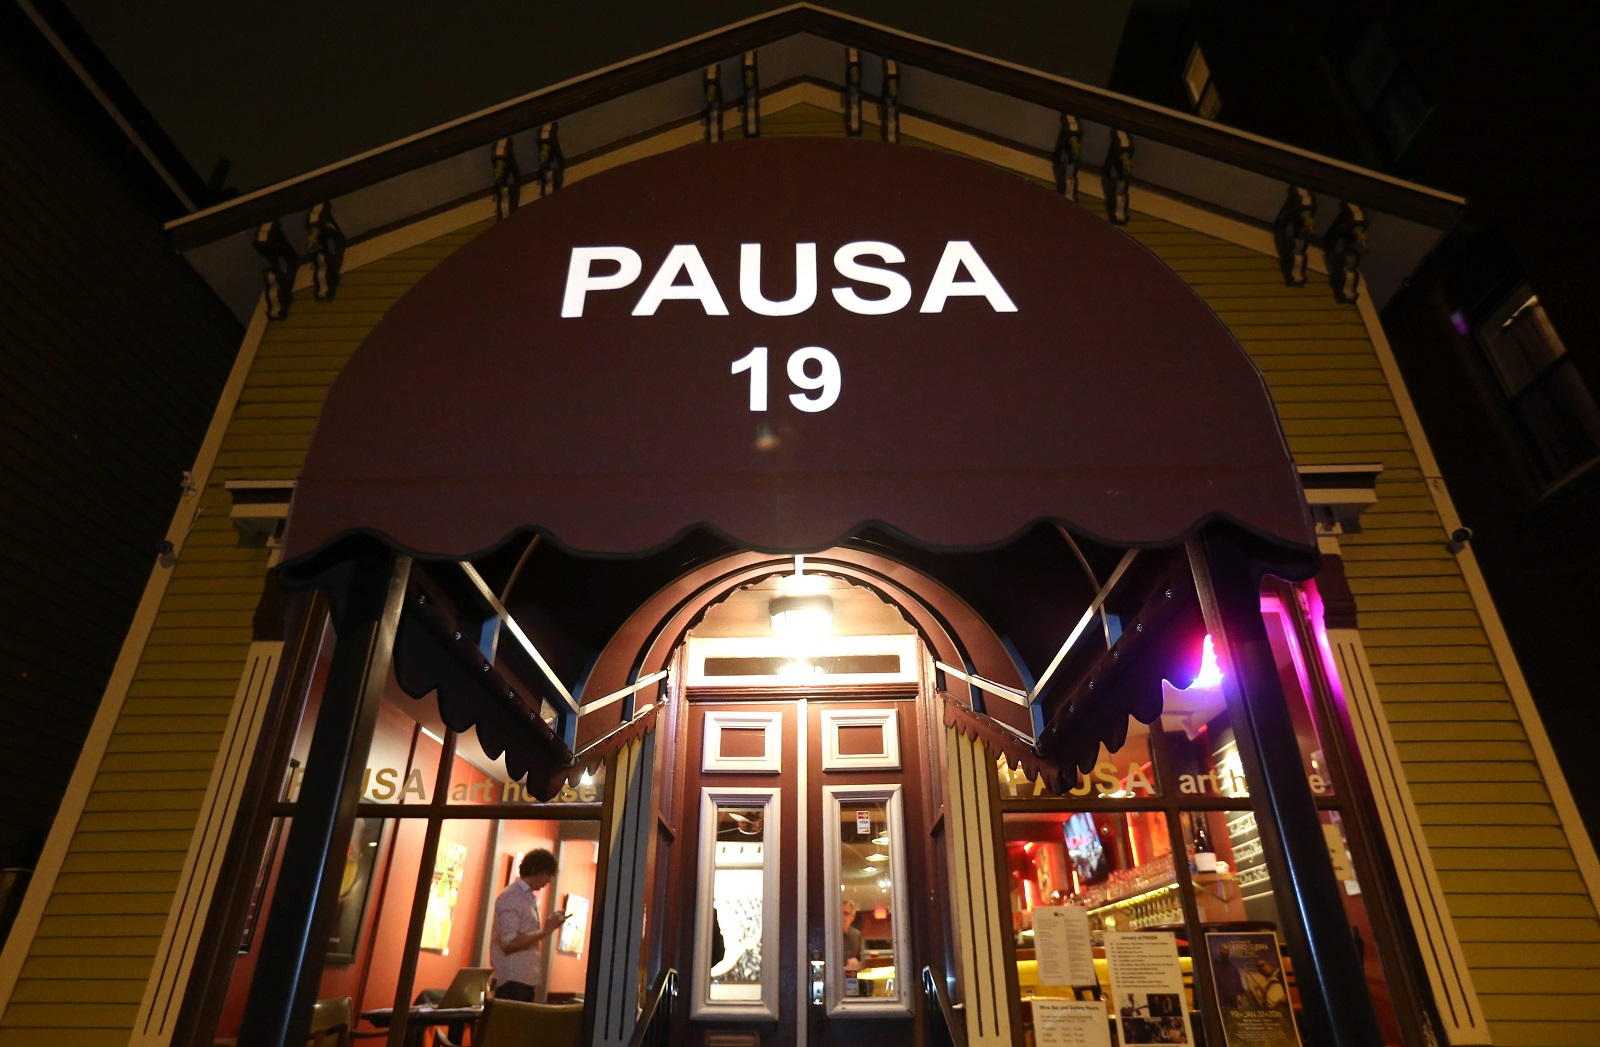 The exterior of the Pausa Art House at 19 Wadsworth St. in Allentown. (Sharon Cantillon/Buffalo News)